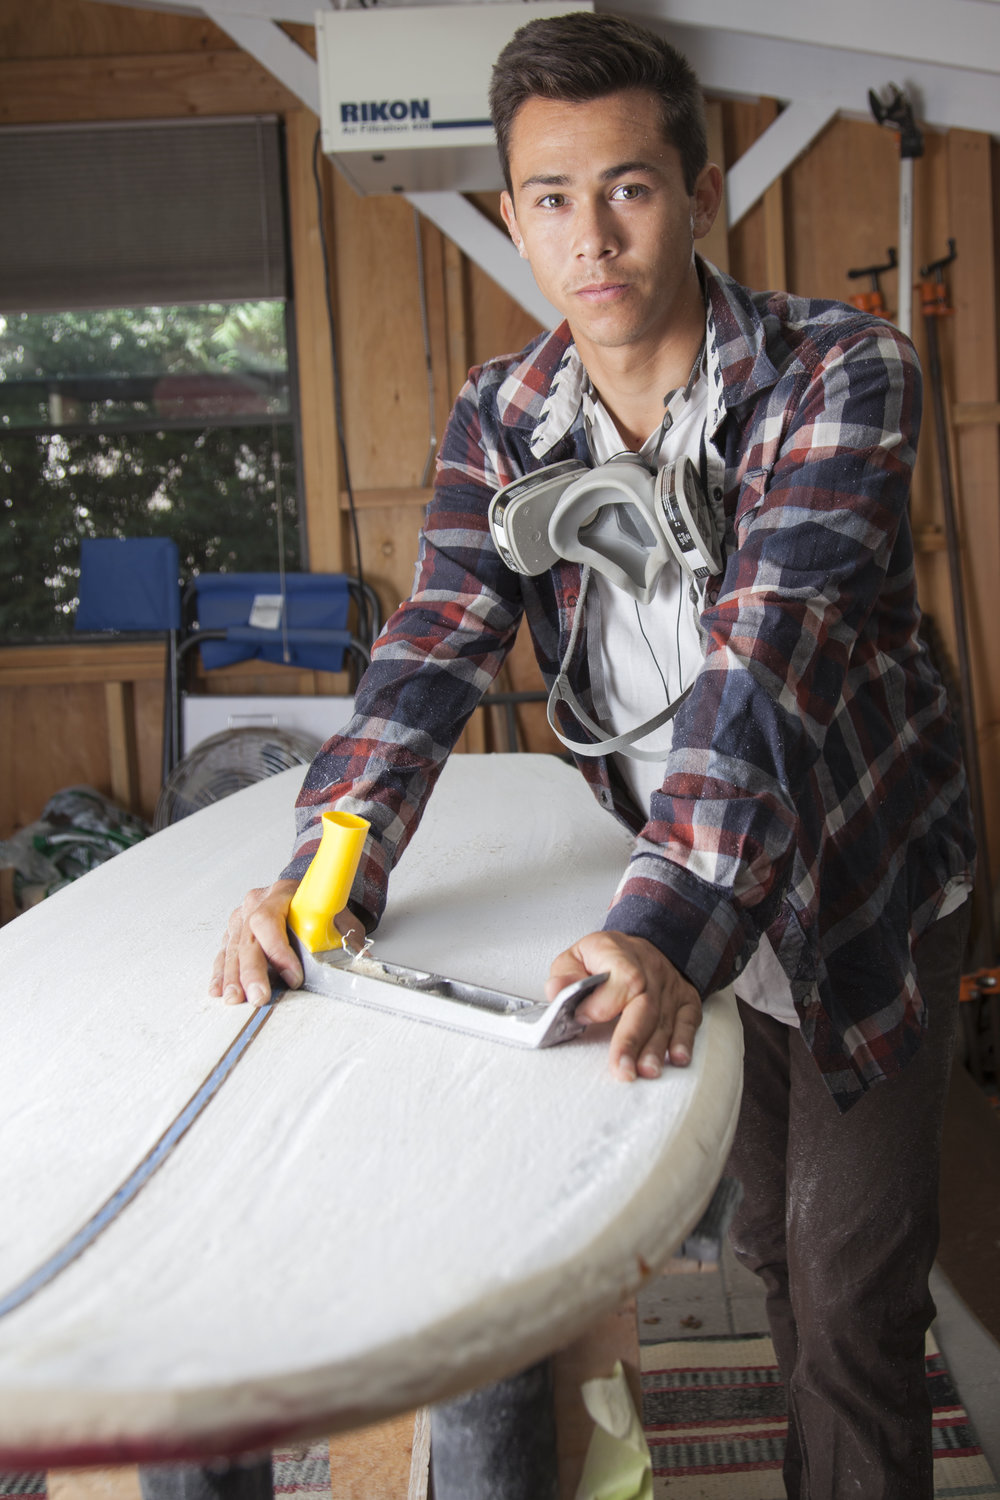 Kieran Giffen works on a custom surfboard inside his workshop in the back yard of his home in Woodland Hills, Calif. on Tuesday, Oct. 4, 2016. Giffen began shaping custom surfboards for his friends when he was 13, but now Giffen receives offers from clients who find him on social media.  Read Giffen's full story   here  .